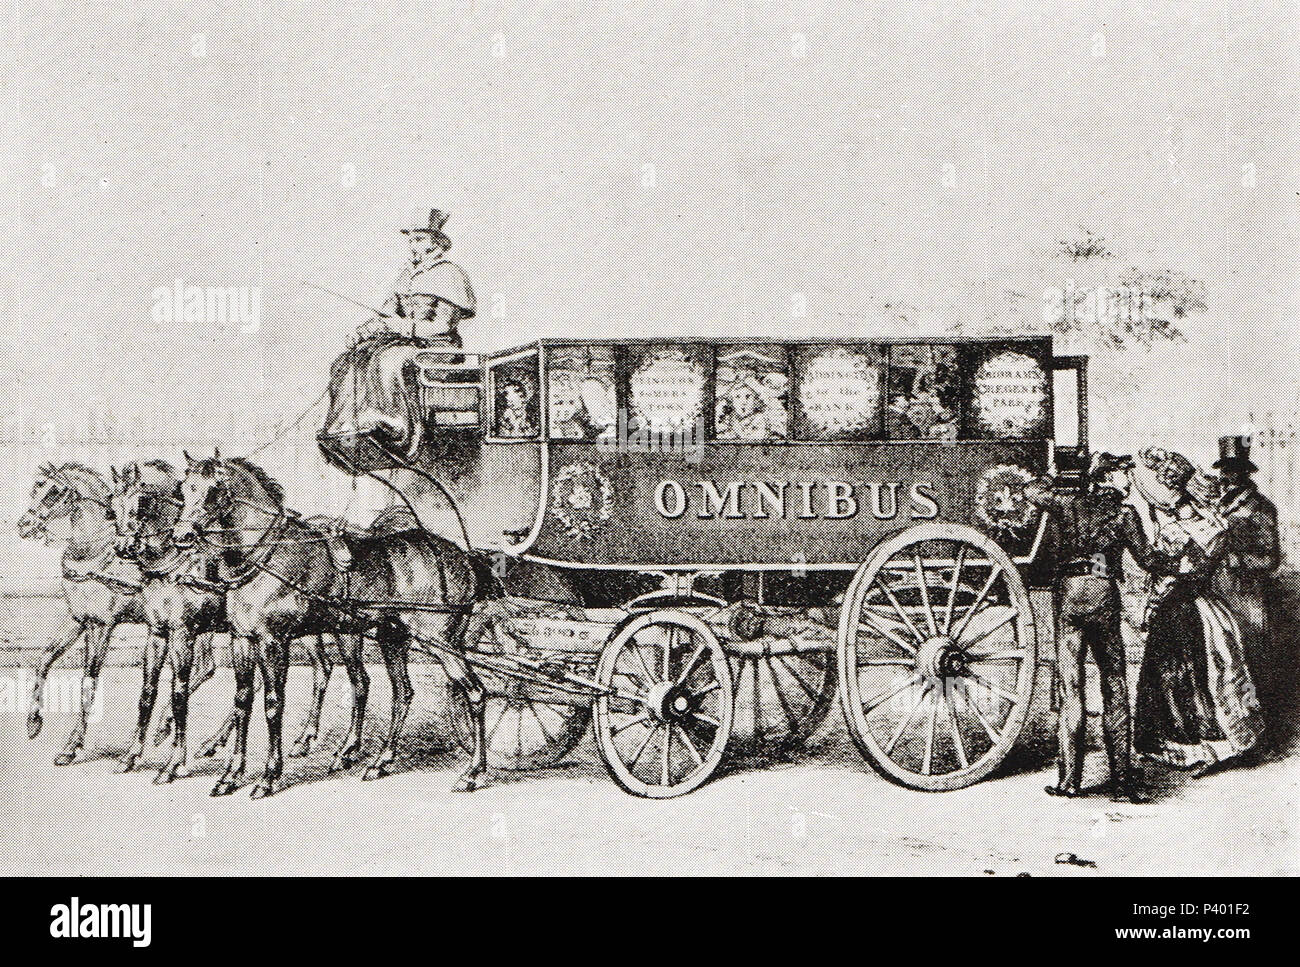 George Shillibeer's first Omnibus, 1829 - Stock Image